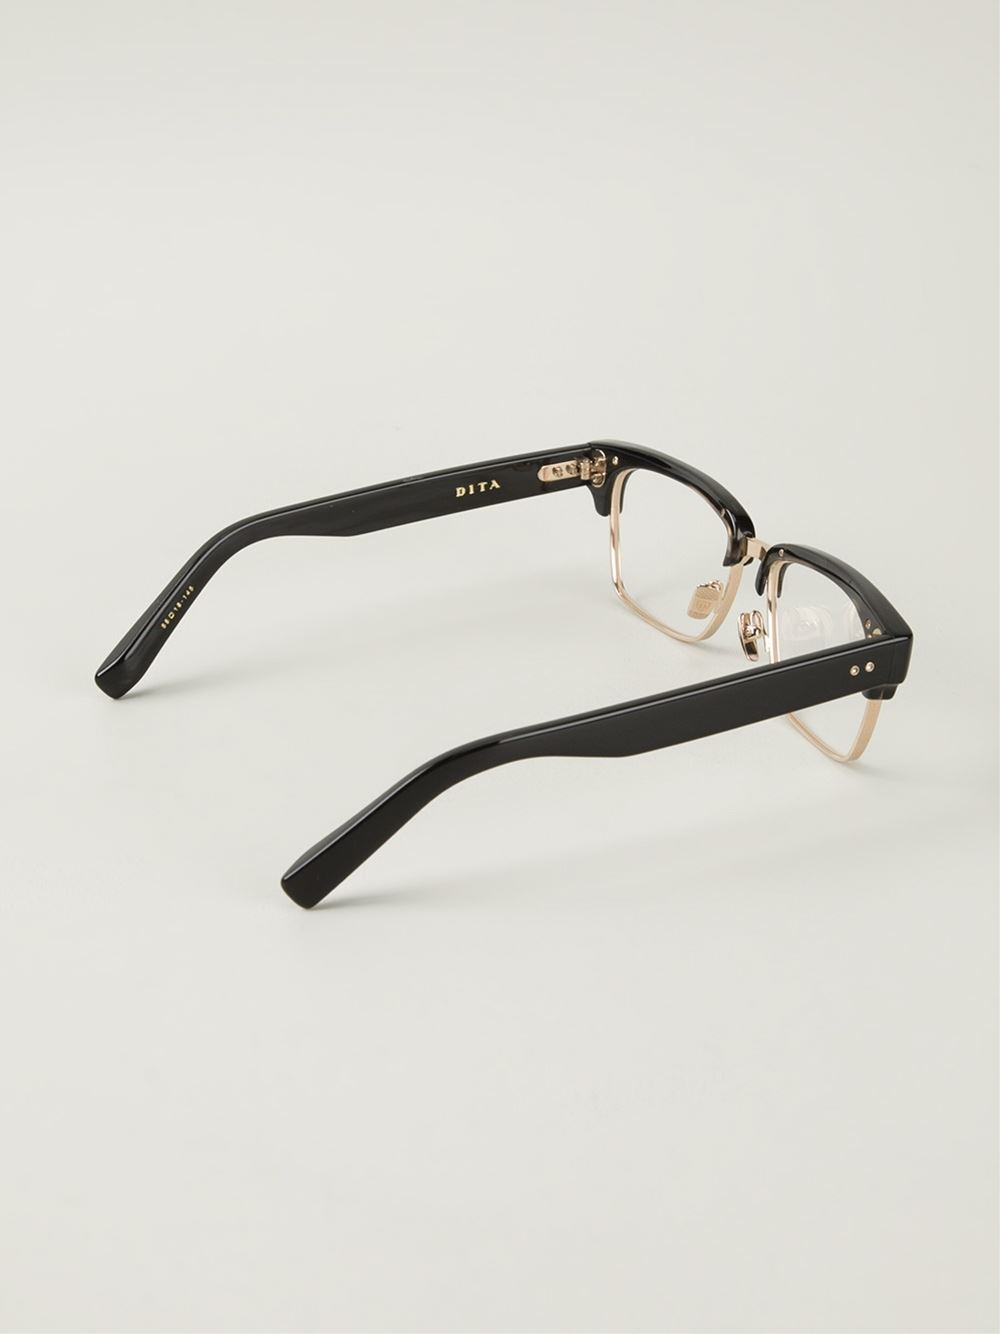 Dita eyewear 'statesman' Glasses in Black for Men | Lyst Dita Eyewear